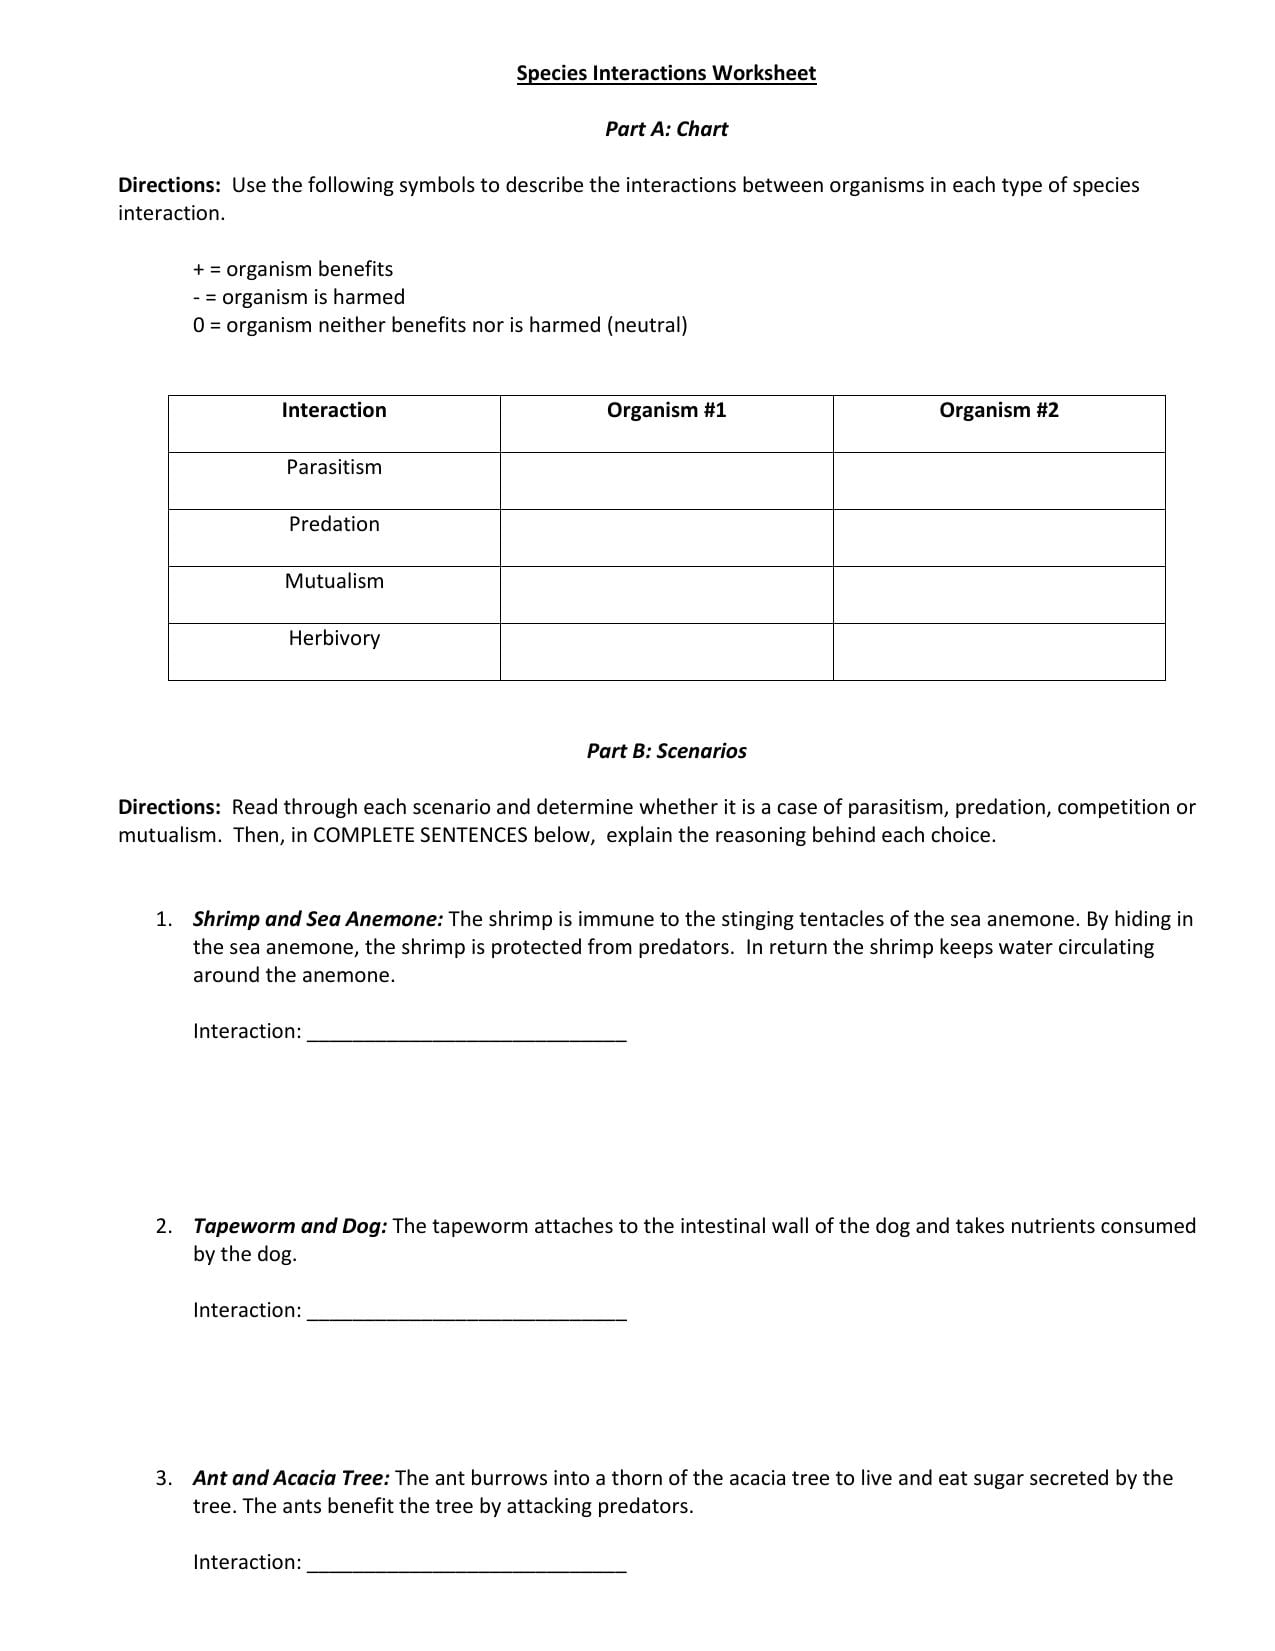 Species Interactions Worksheet Answer Key